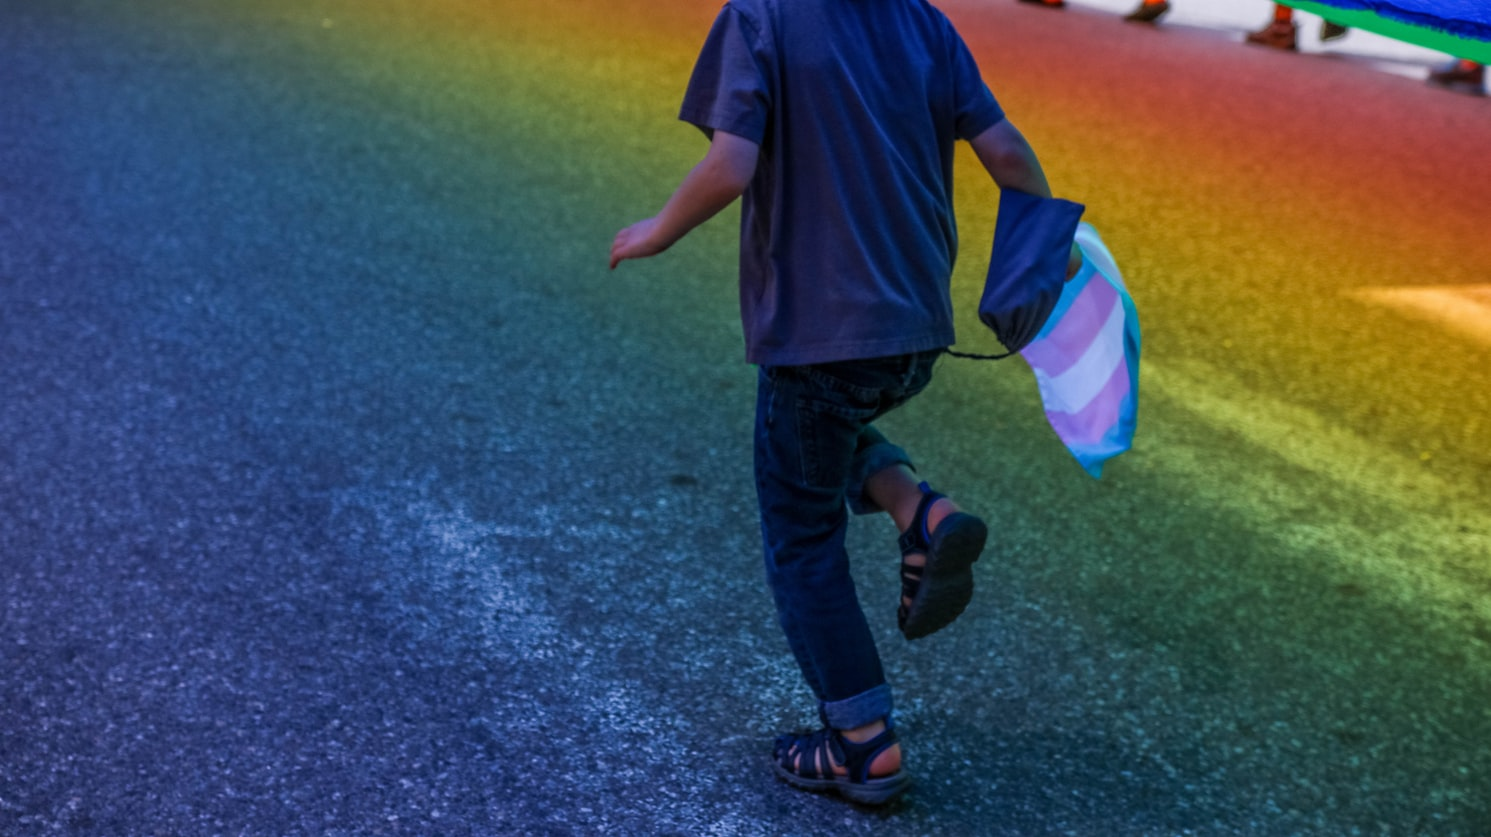 A child is running with a flag in their hand